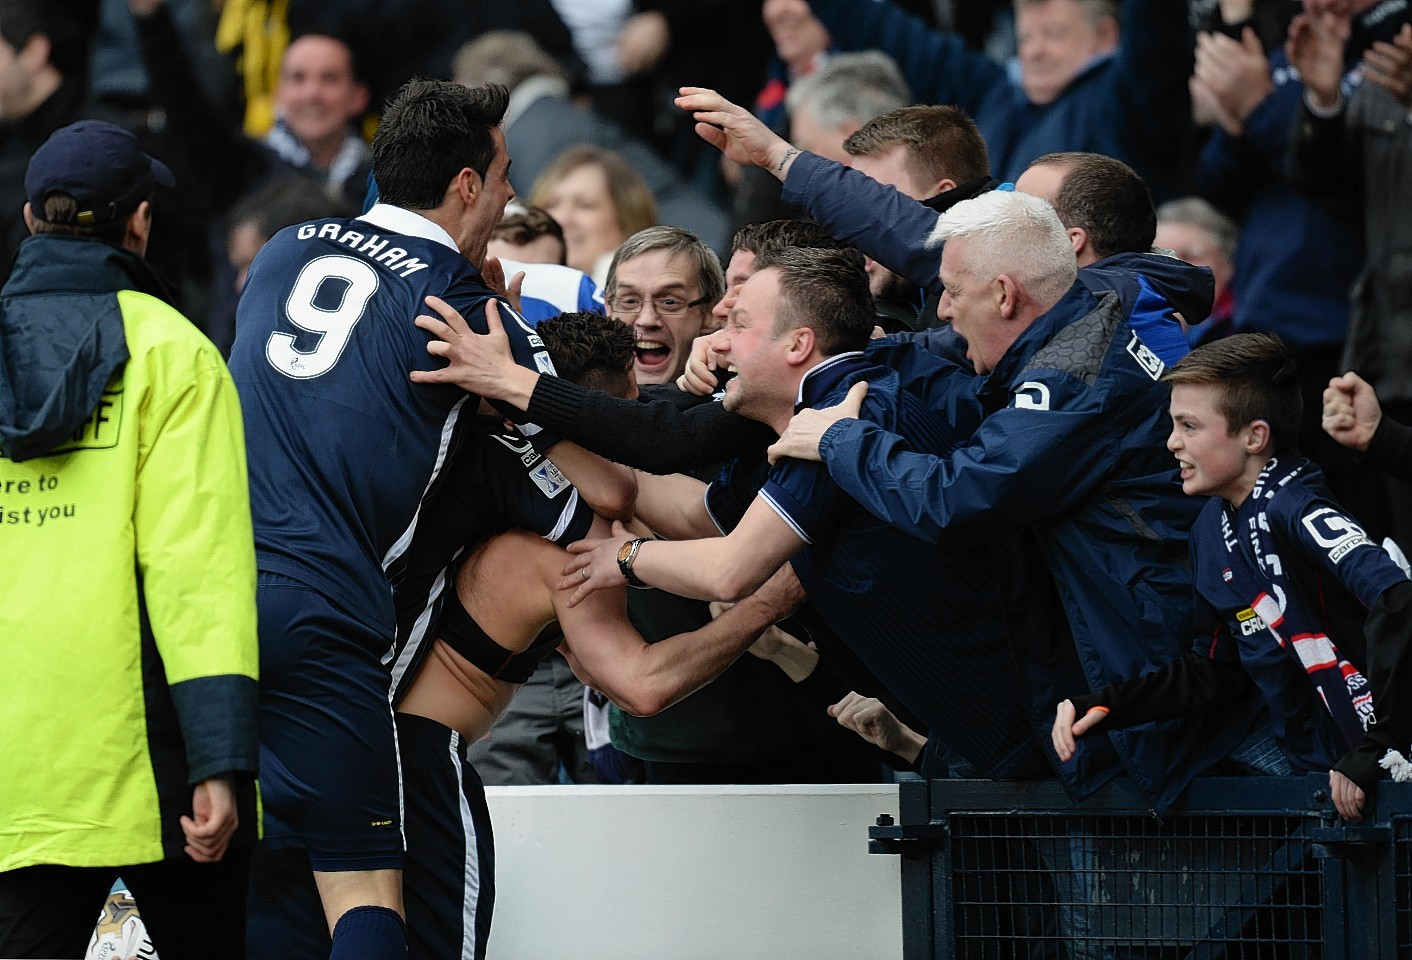 Ross County's Alex Schalk celebrates his winning strike with Staggies fans and team mates